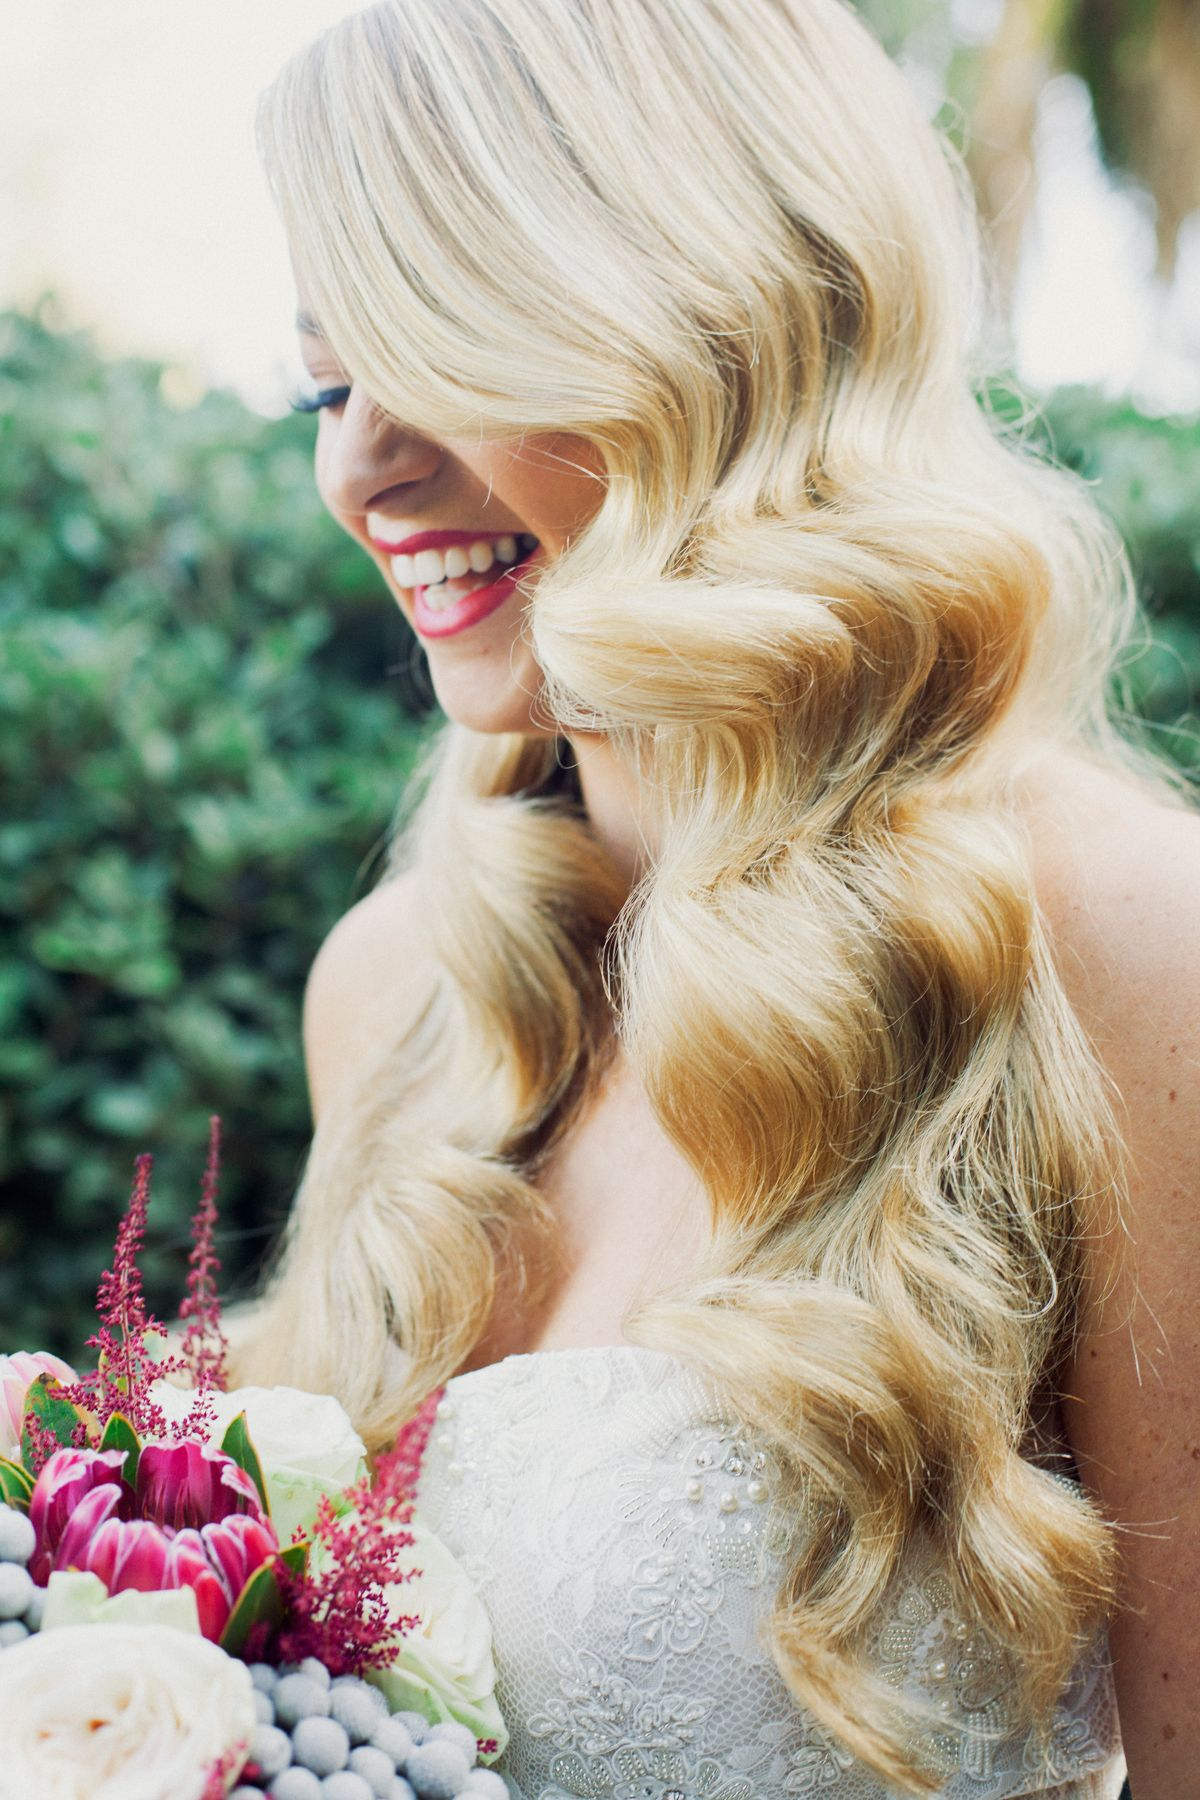 18 dreamy ways to wear your hair down on your wedding day